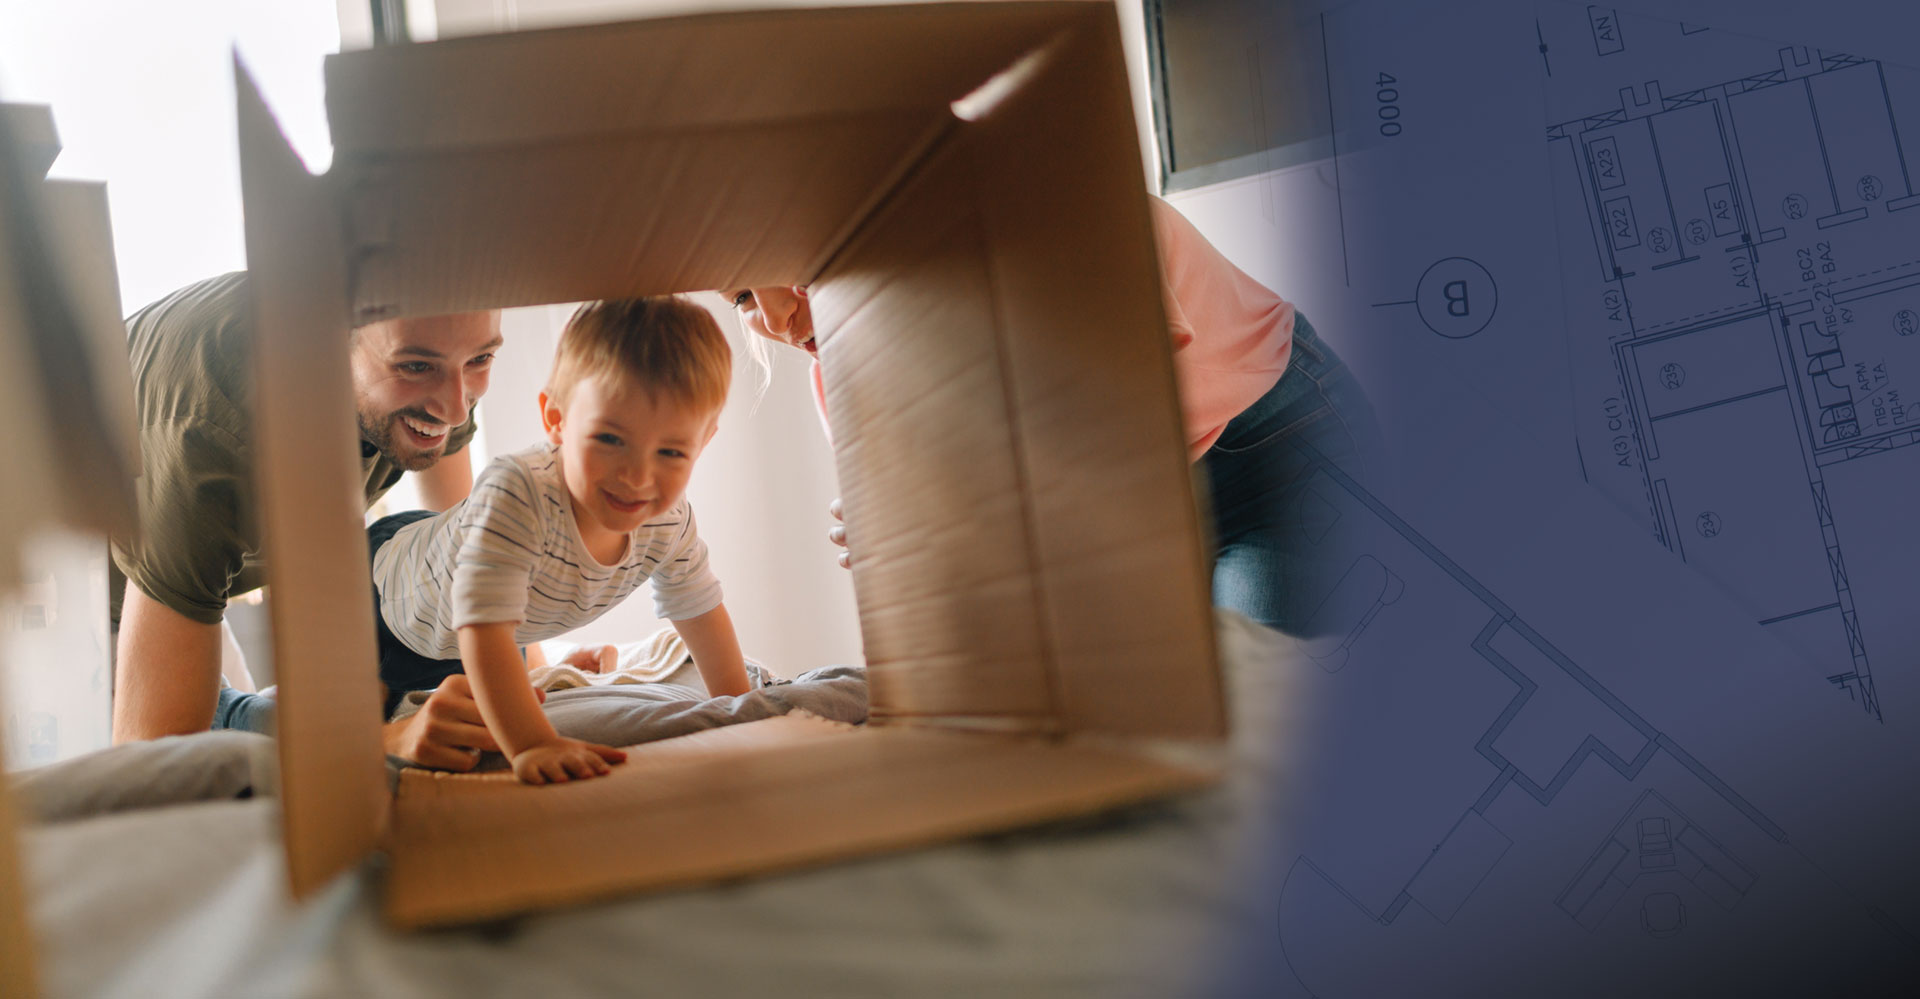 Child crawling through moving box with parent watching